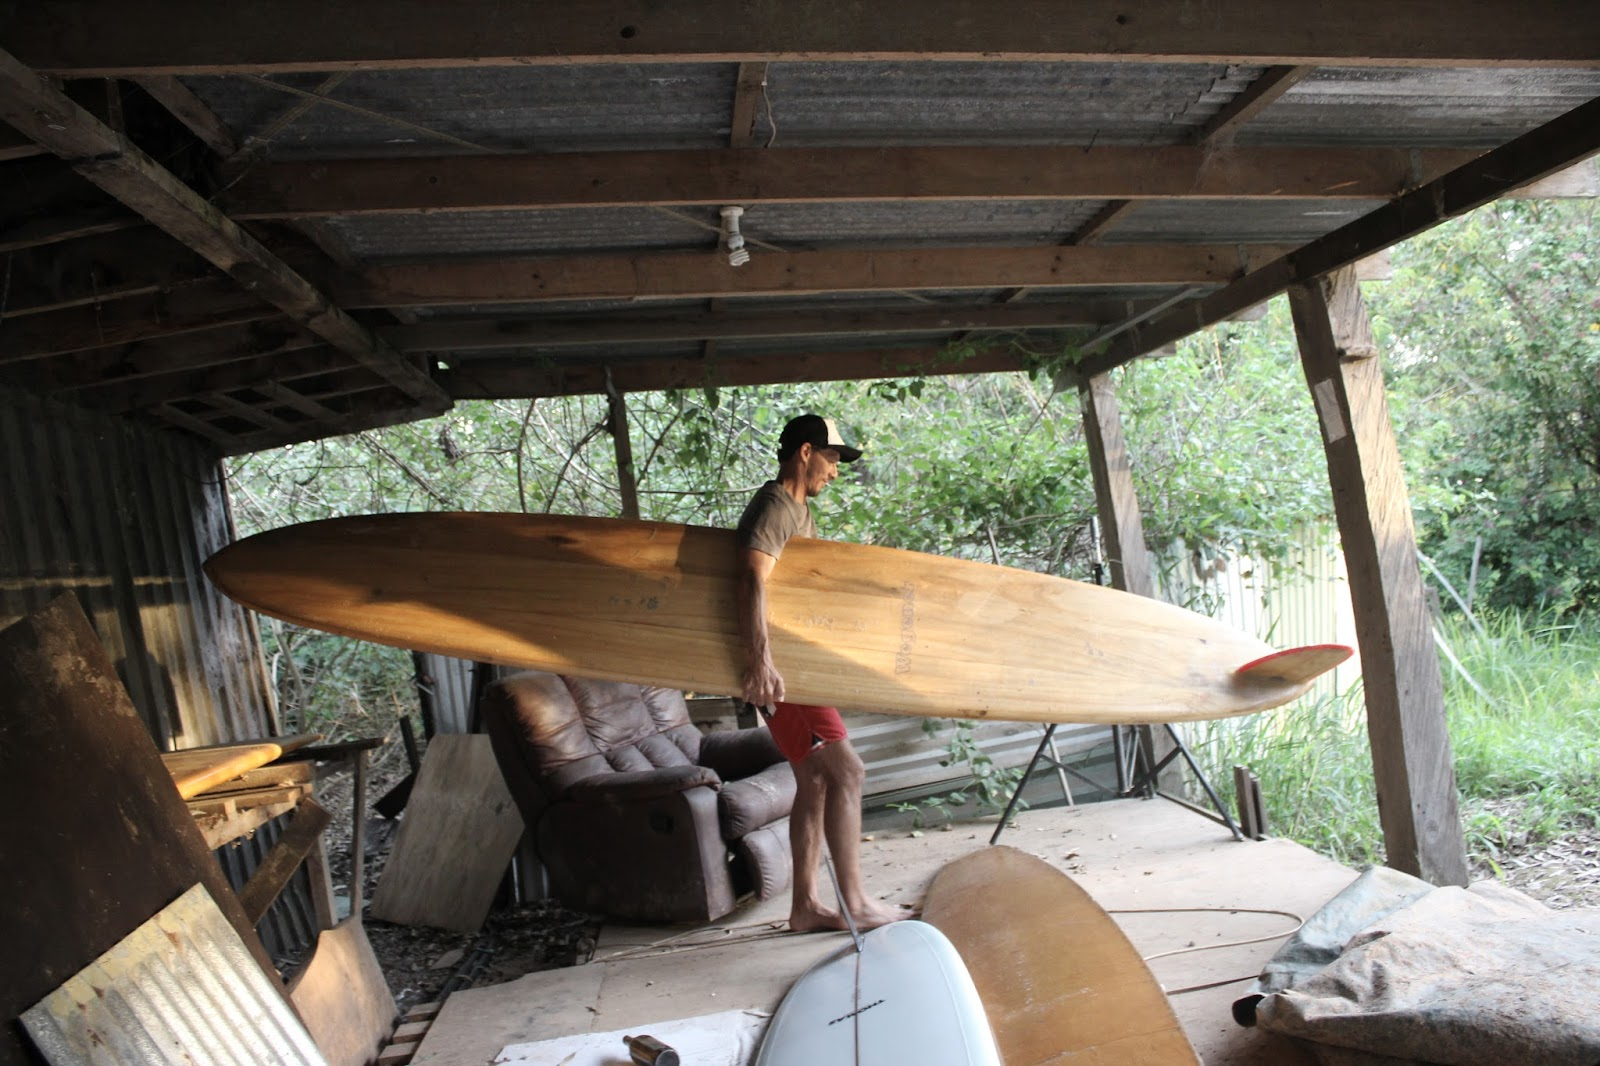 16-03-2016-australia-siebert-surfboards-10